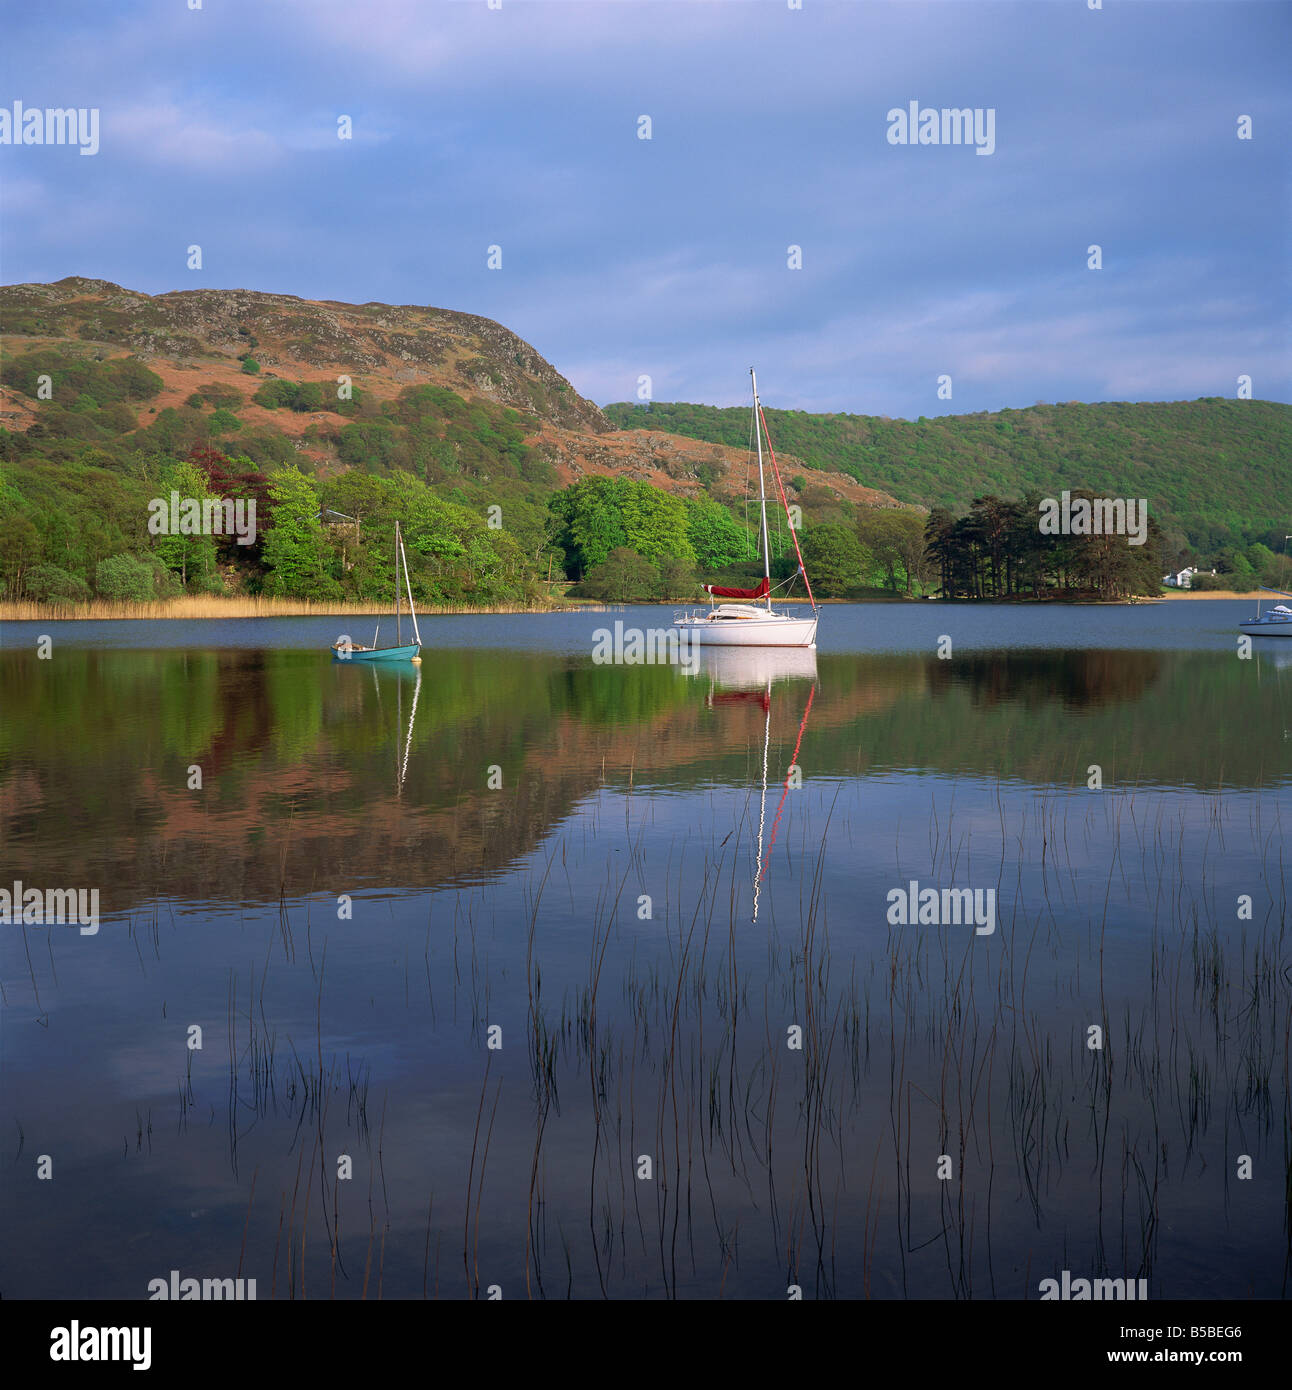 Boats and reflections, Coniston Water, Lake District National Park, Cumbria, England, Europe Stock Photo